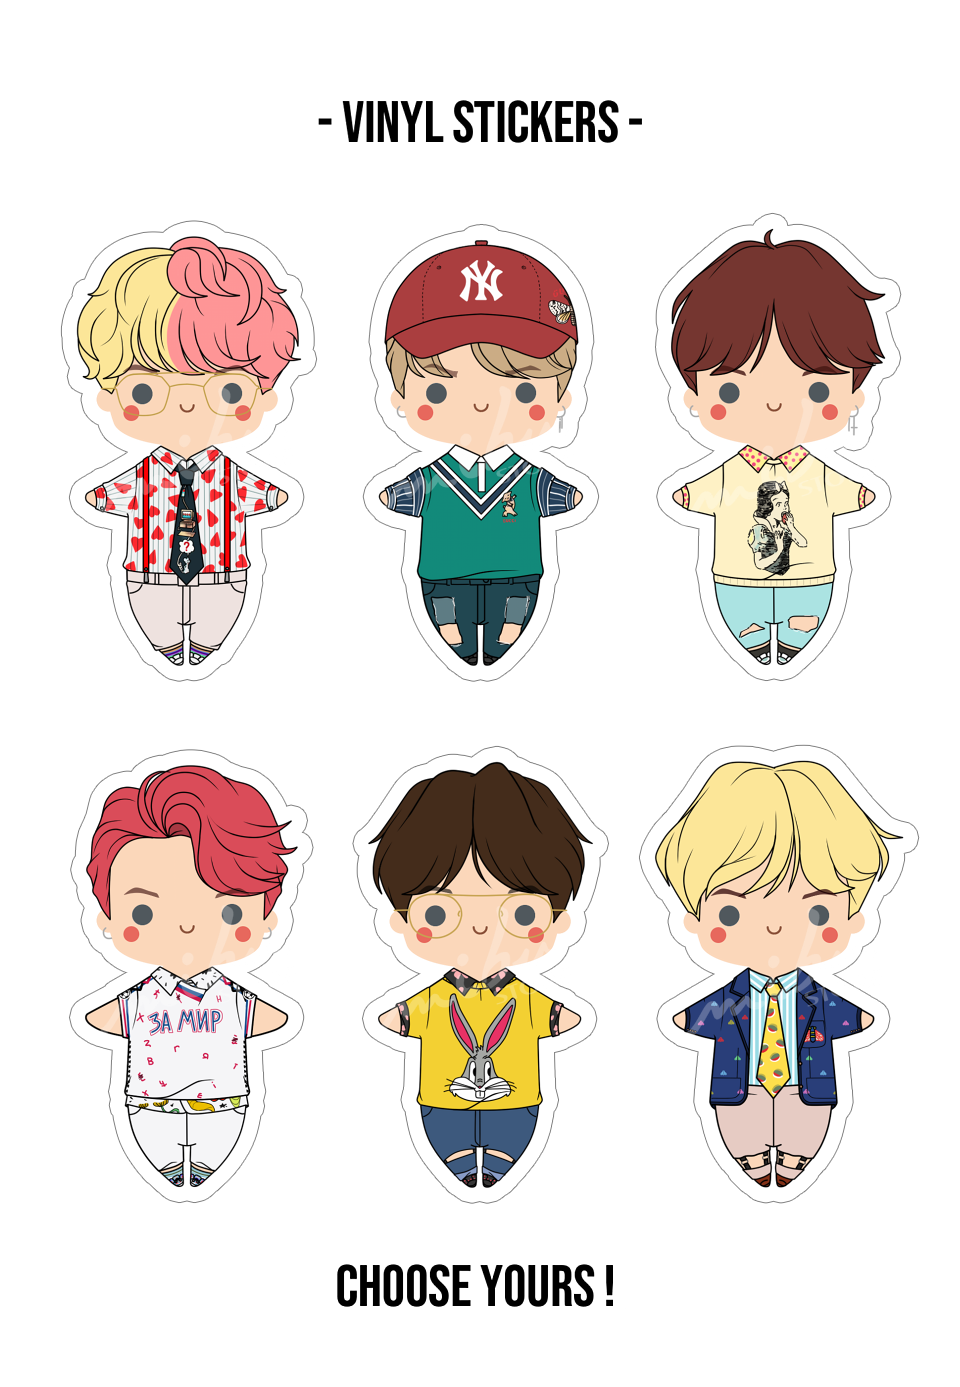 Bts Idol Vinyl Stickers Cute Stickers Print Stickers Bts Chibi